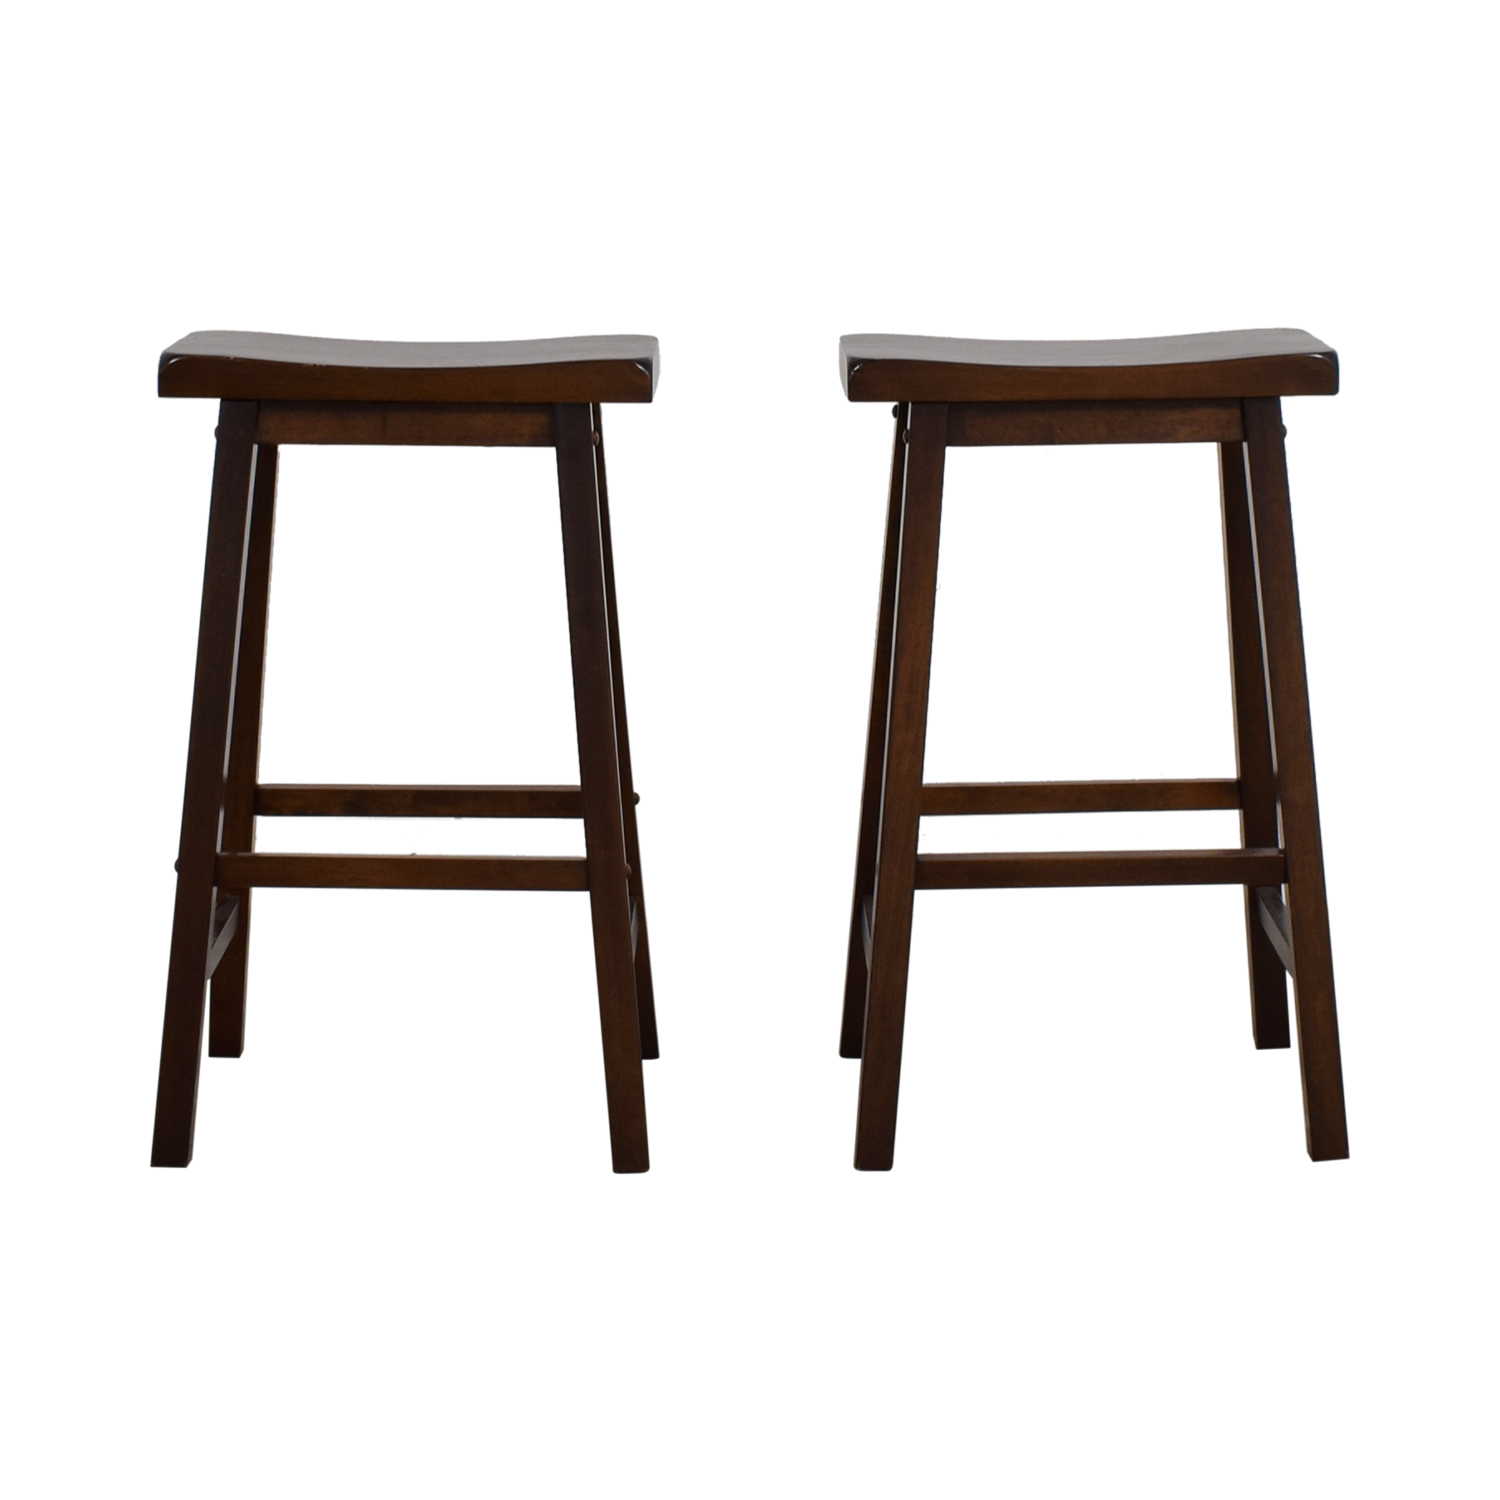 Curved Seat Wood Stools